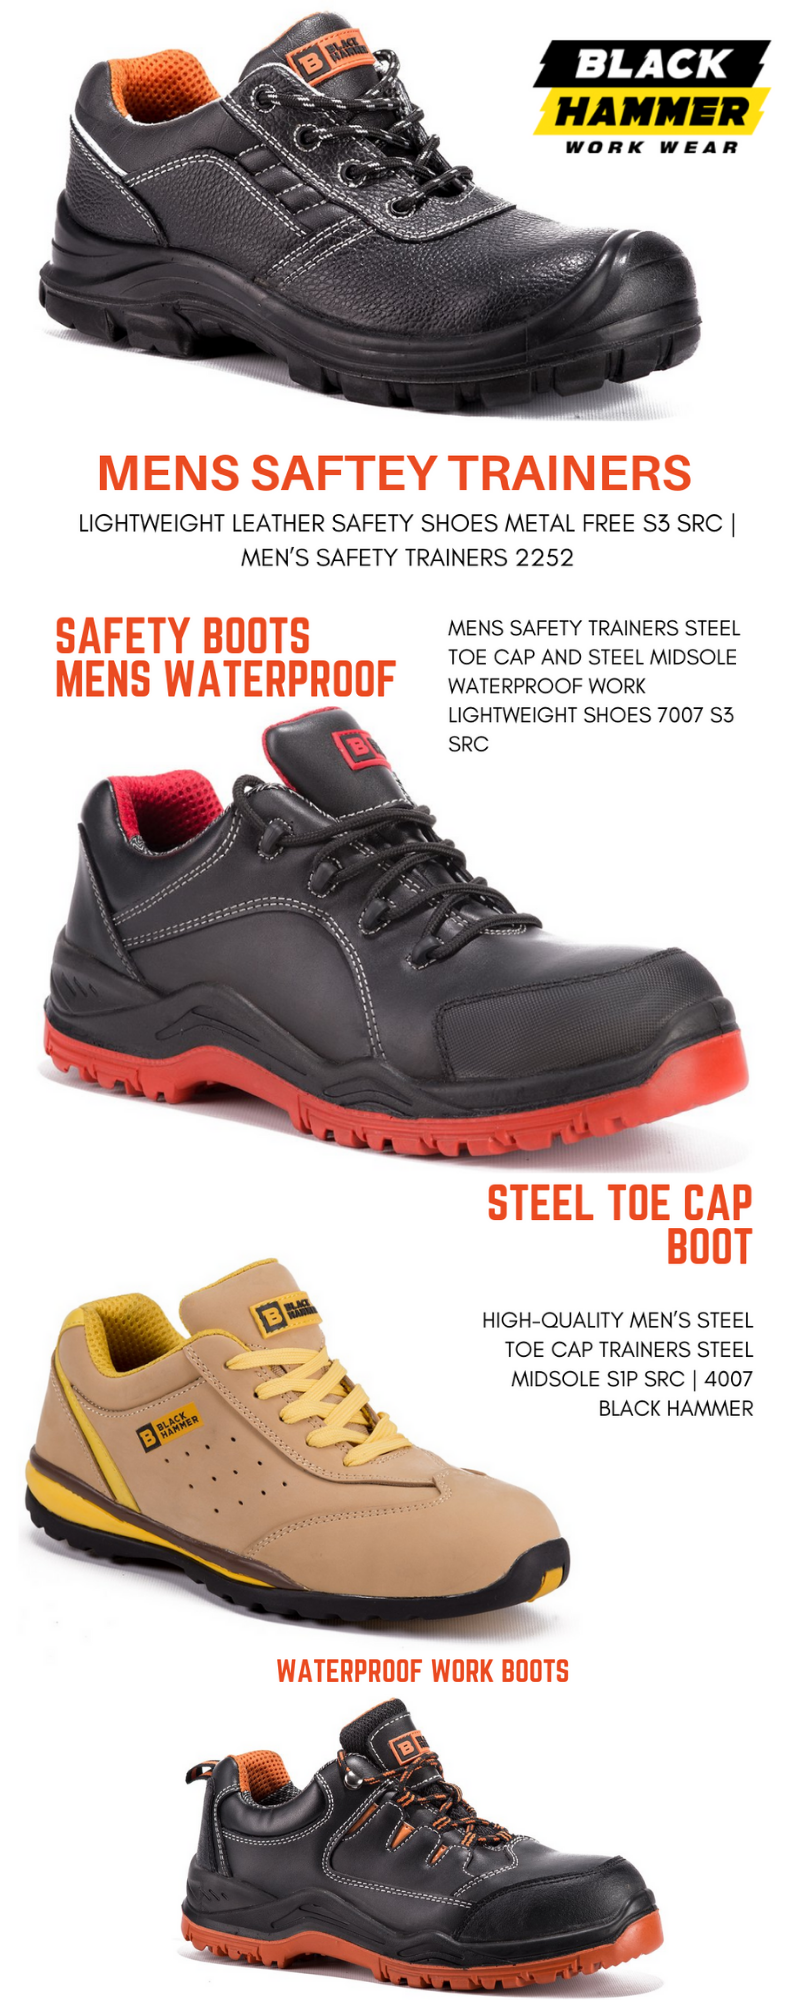 Mens Safety Trainers | Steel toe cap